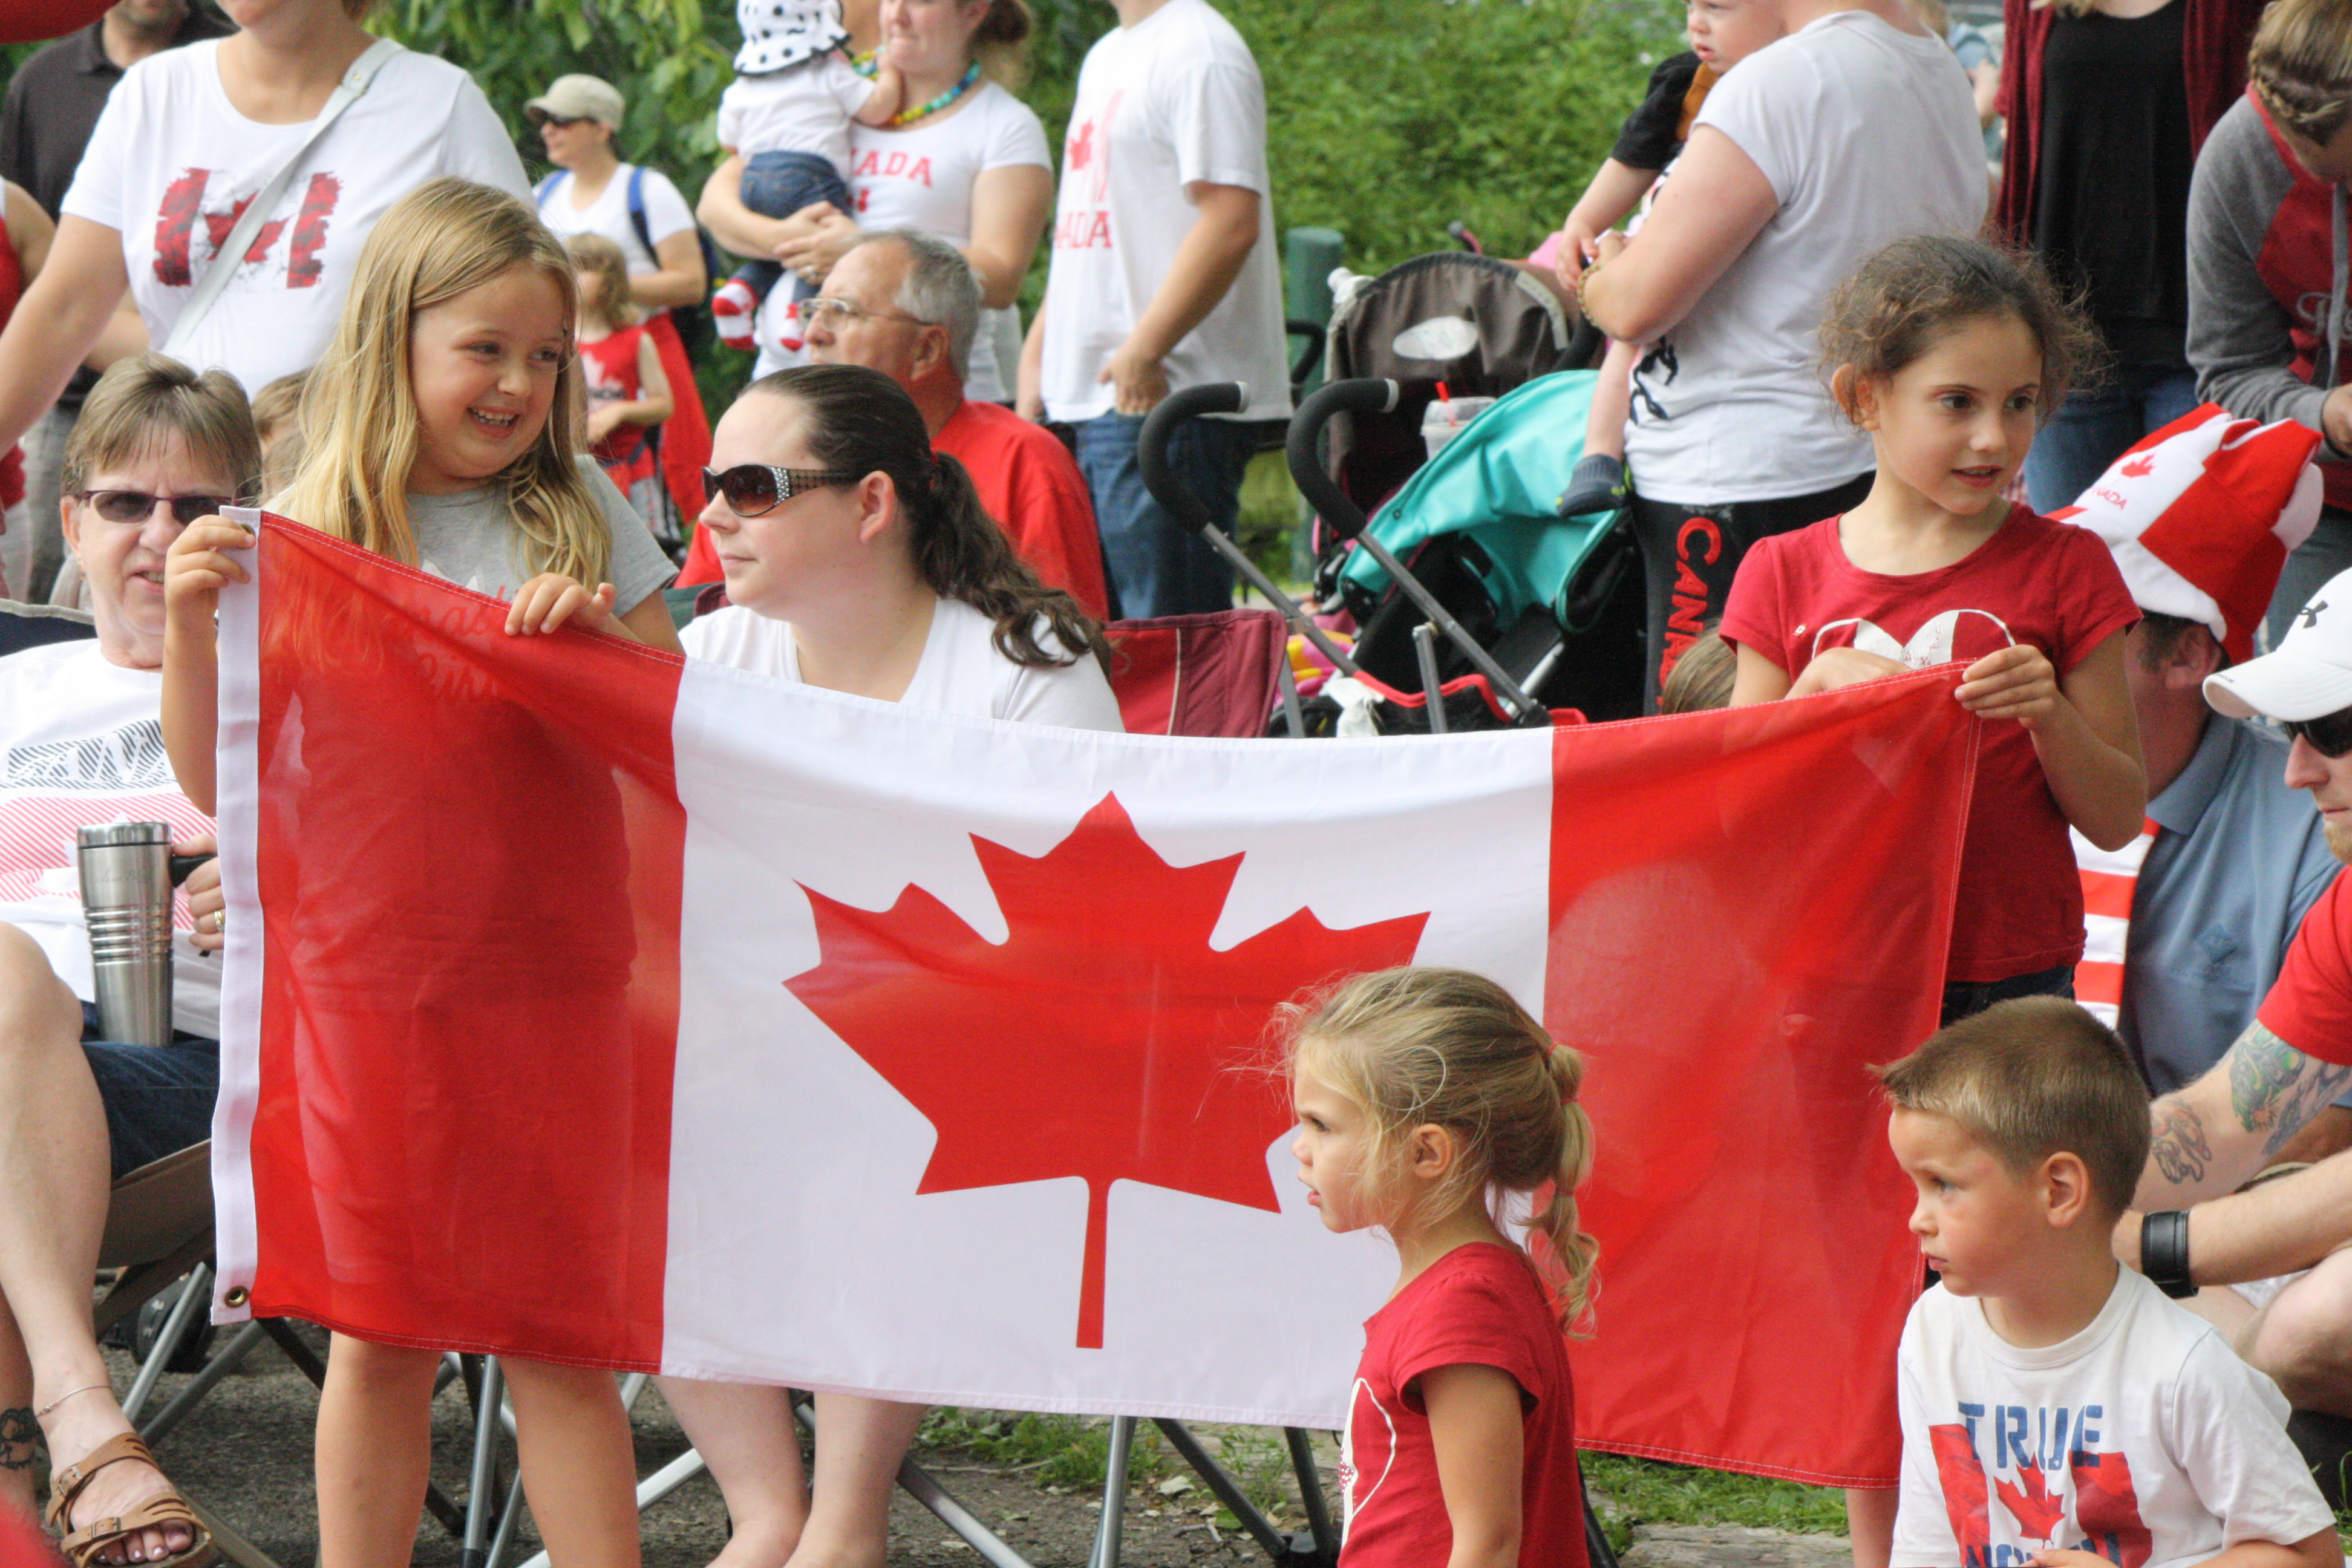 Thousands line the parade route for Sarnia's annual Canada Day parade July 1, 2015 (BlackburnNews.com photo by Dave Dentinger)